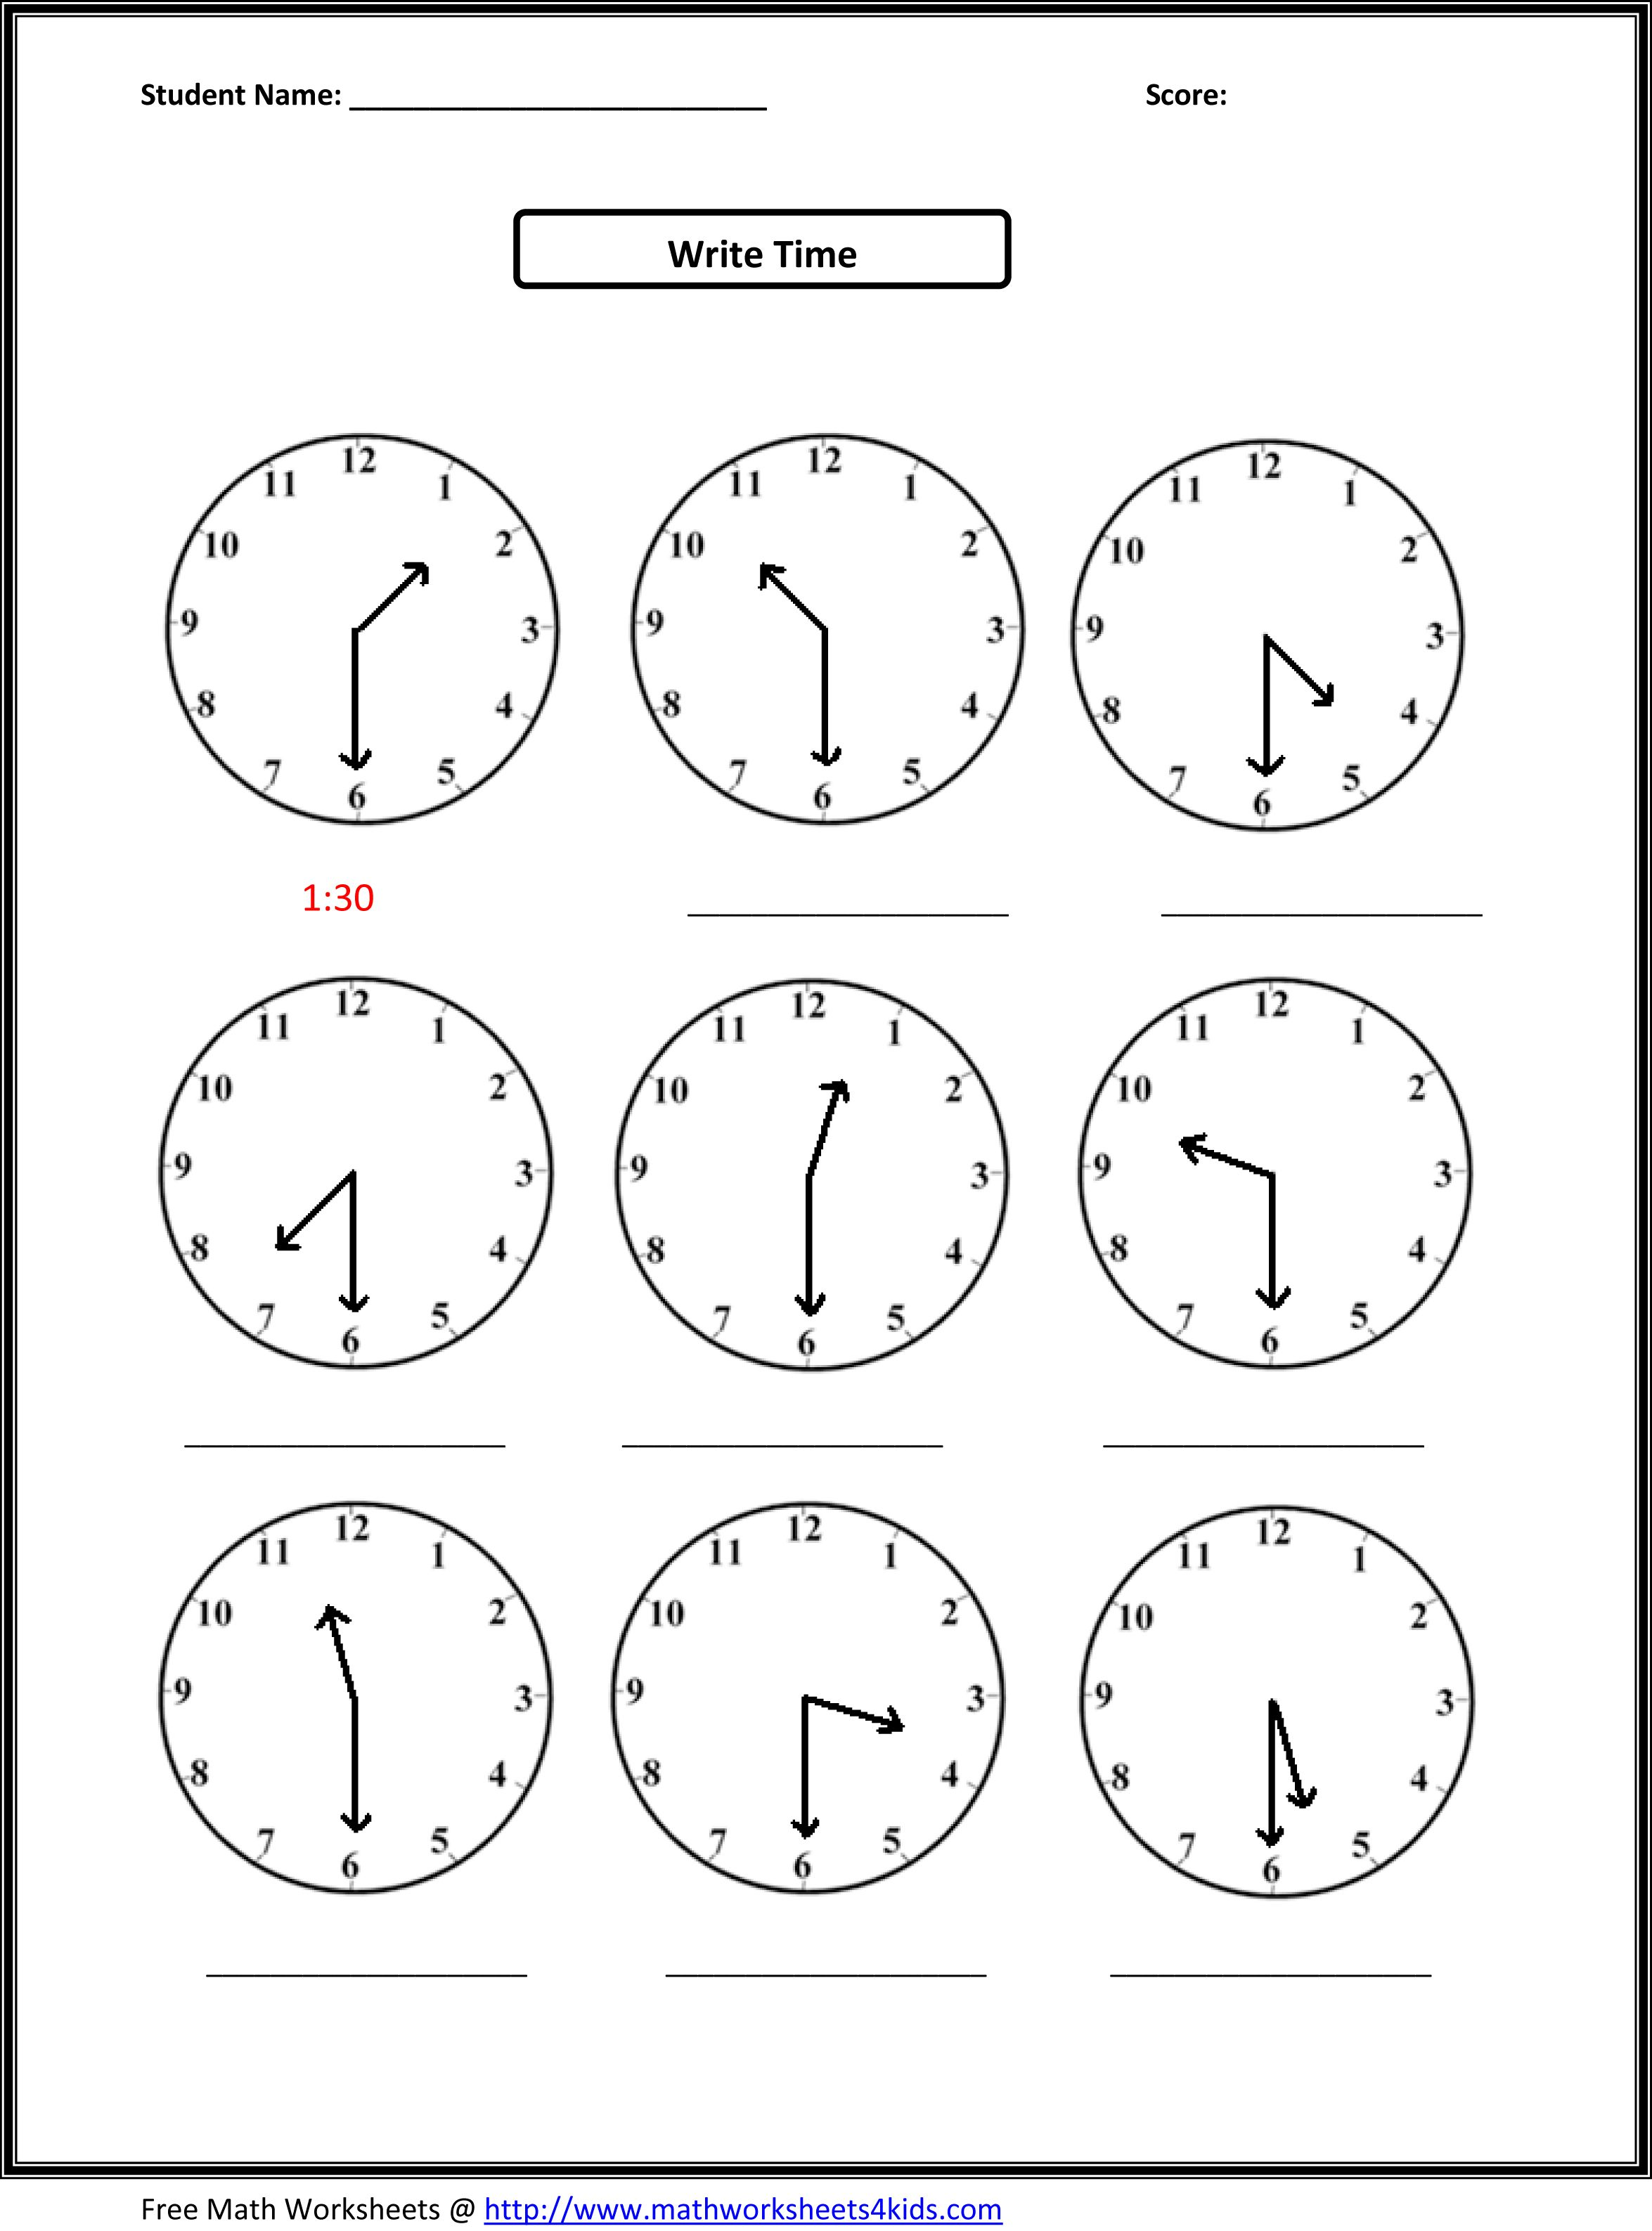 Weirdmailus  Gorgeous Worksheet On Time For Grade   Reocurent With Great Free Printable Telling Time Worksheets Nd Grade  Reocurent With Beautiful Check Writing Worksheets Also Density Calculations Worksheet Answers In Addition How To Make A Worksheet And Prime Or Composite Worksheet As Well As Addition Worksheets With Regrouping Additionally Th Grade Biology Worksheets From Reocurentcom With Weirdmailus  Great Worksheet On Time For Grade   Reocurent With Beautiful Free Printable Telling Time Worksheets Nd Grade  Reocurent And Gorgeous Check Writing Worksheets Also Density Calculations Worksheet Answers In Addition How To Make A Worksheet From Reocurentcom